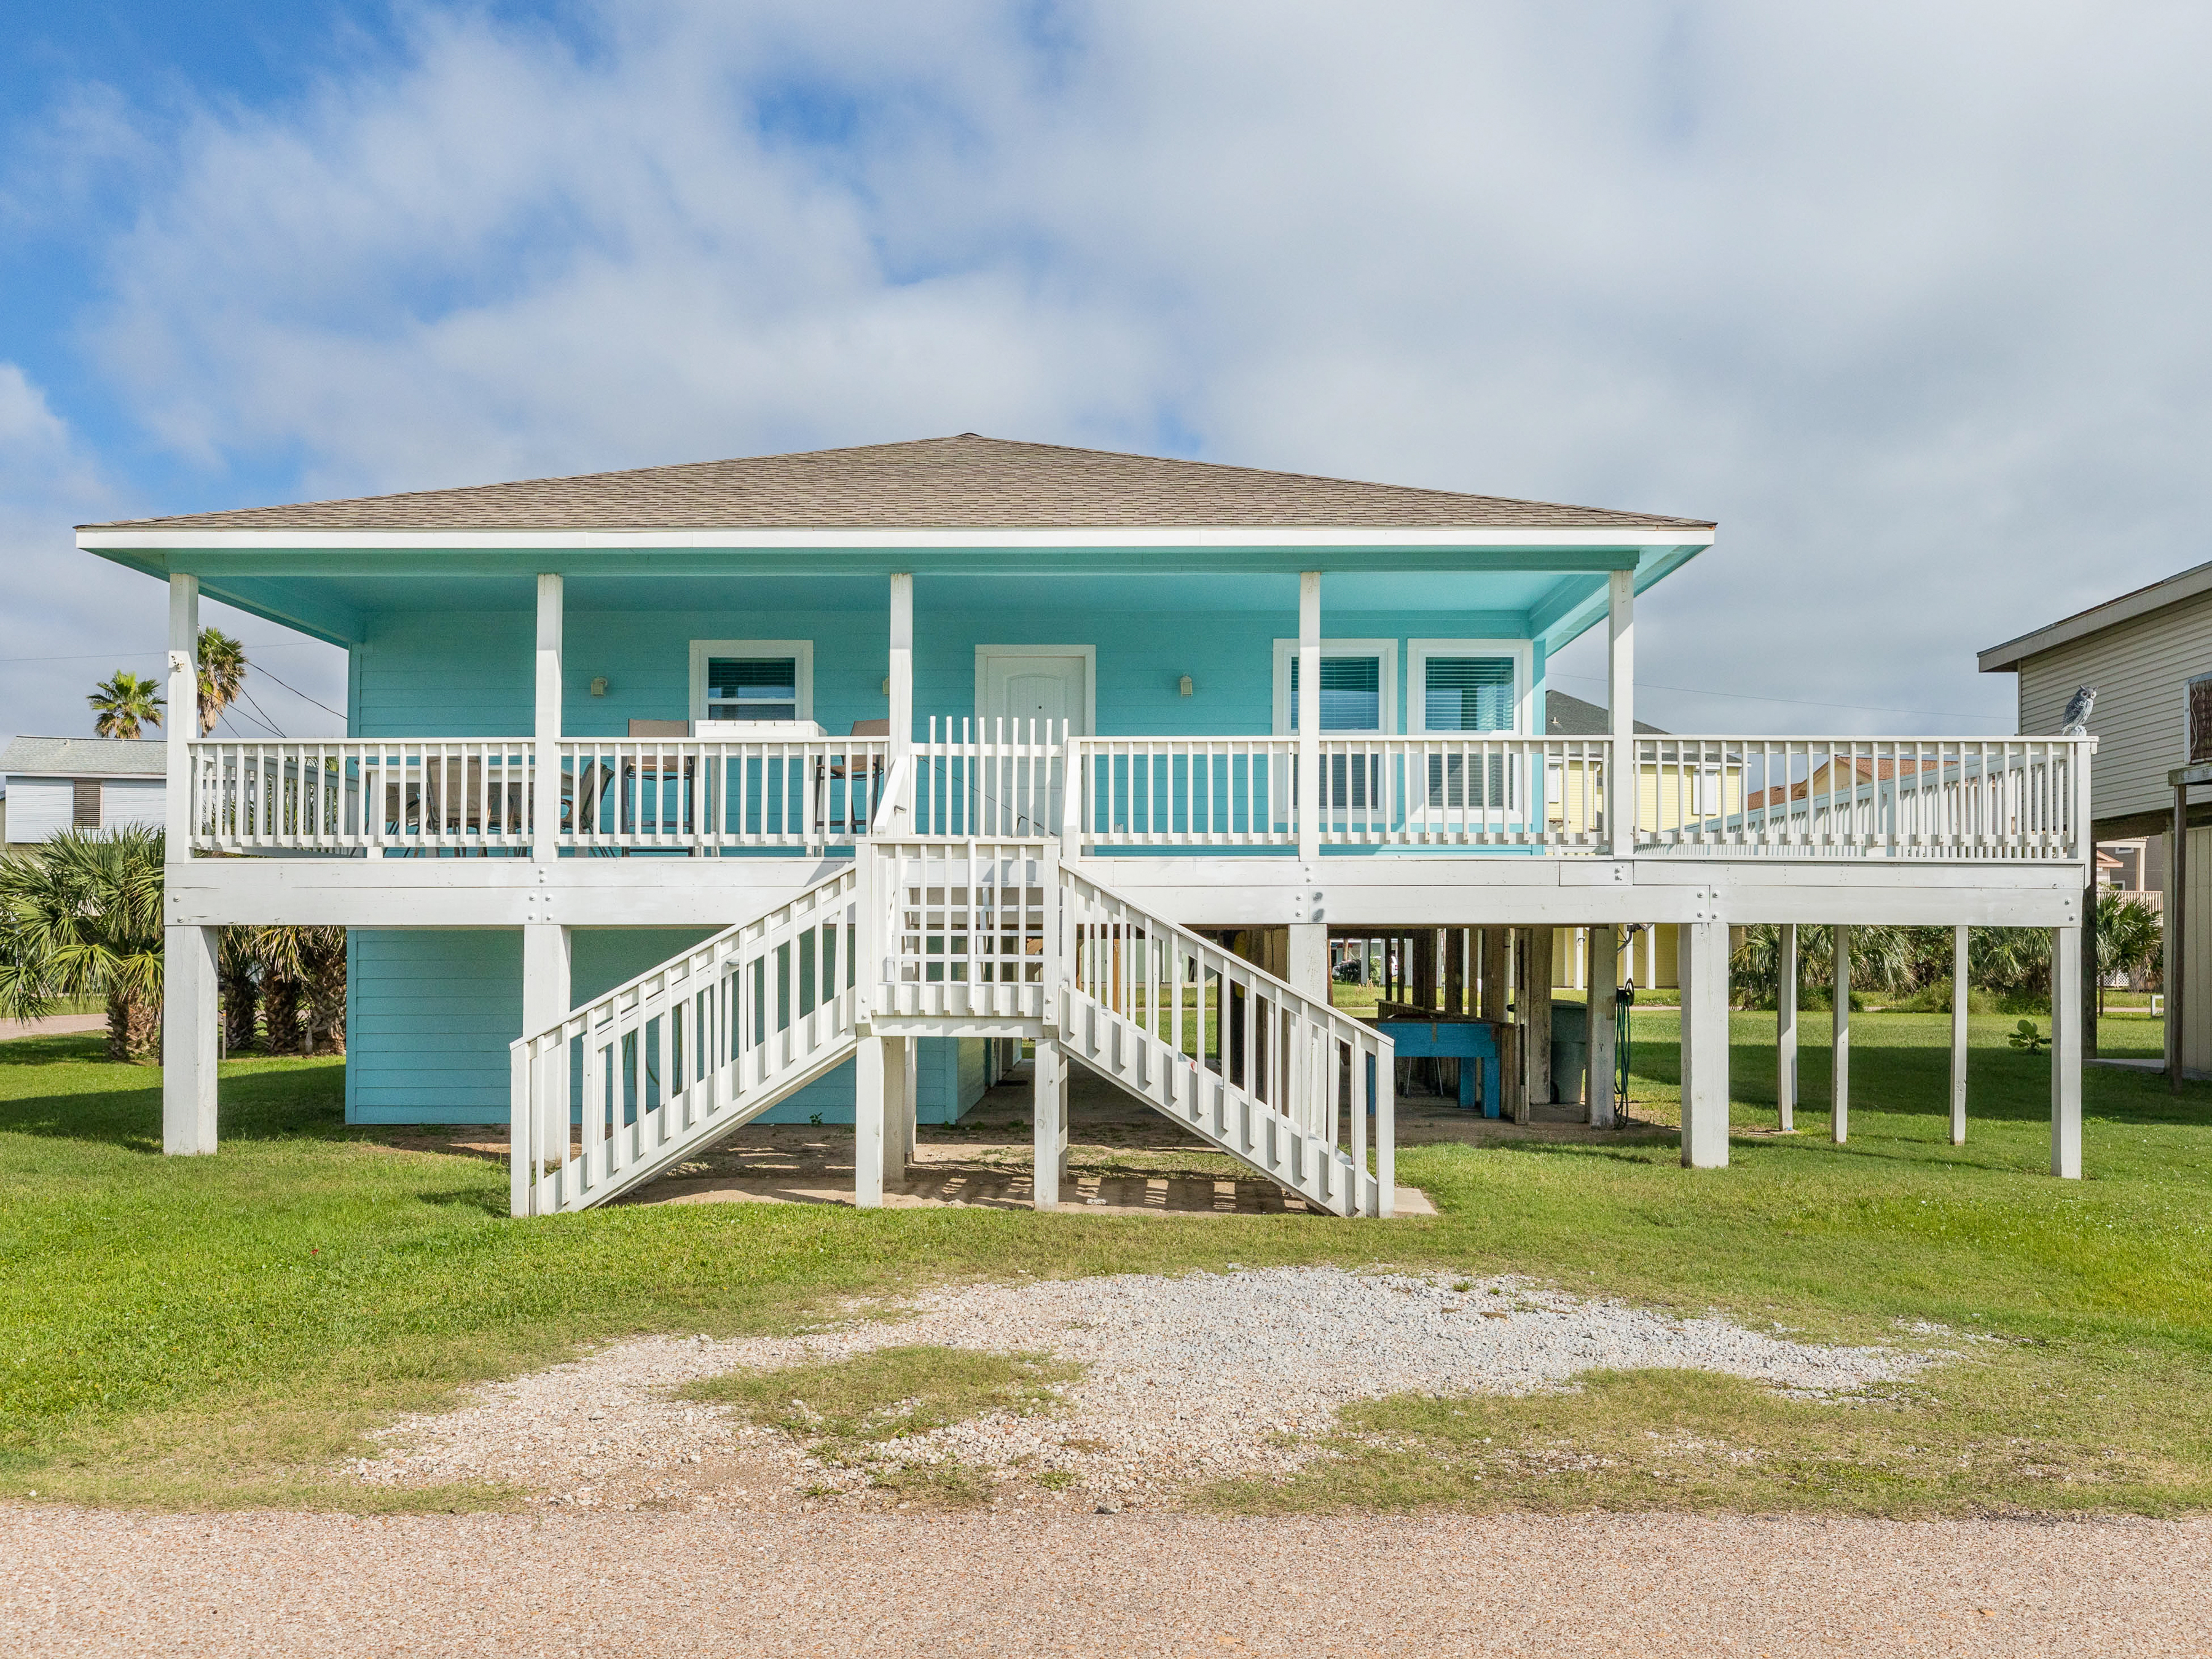 Galveston TX Vacation Rental This charming beach